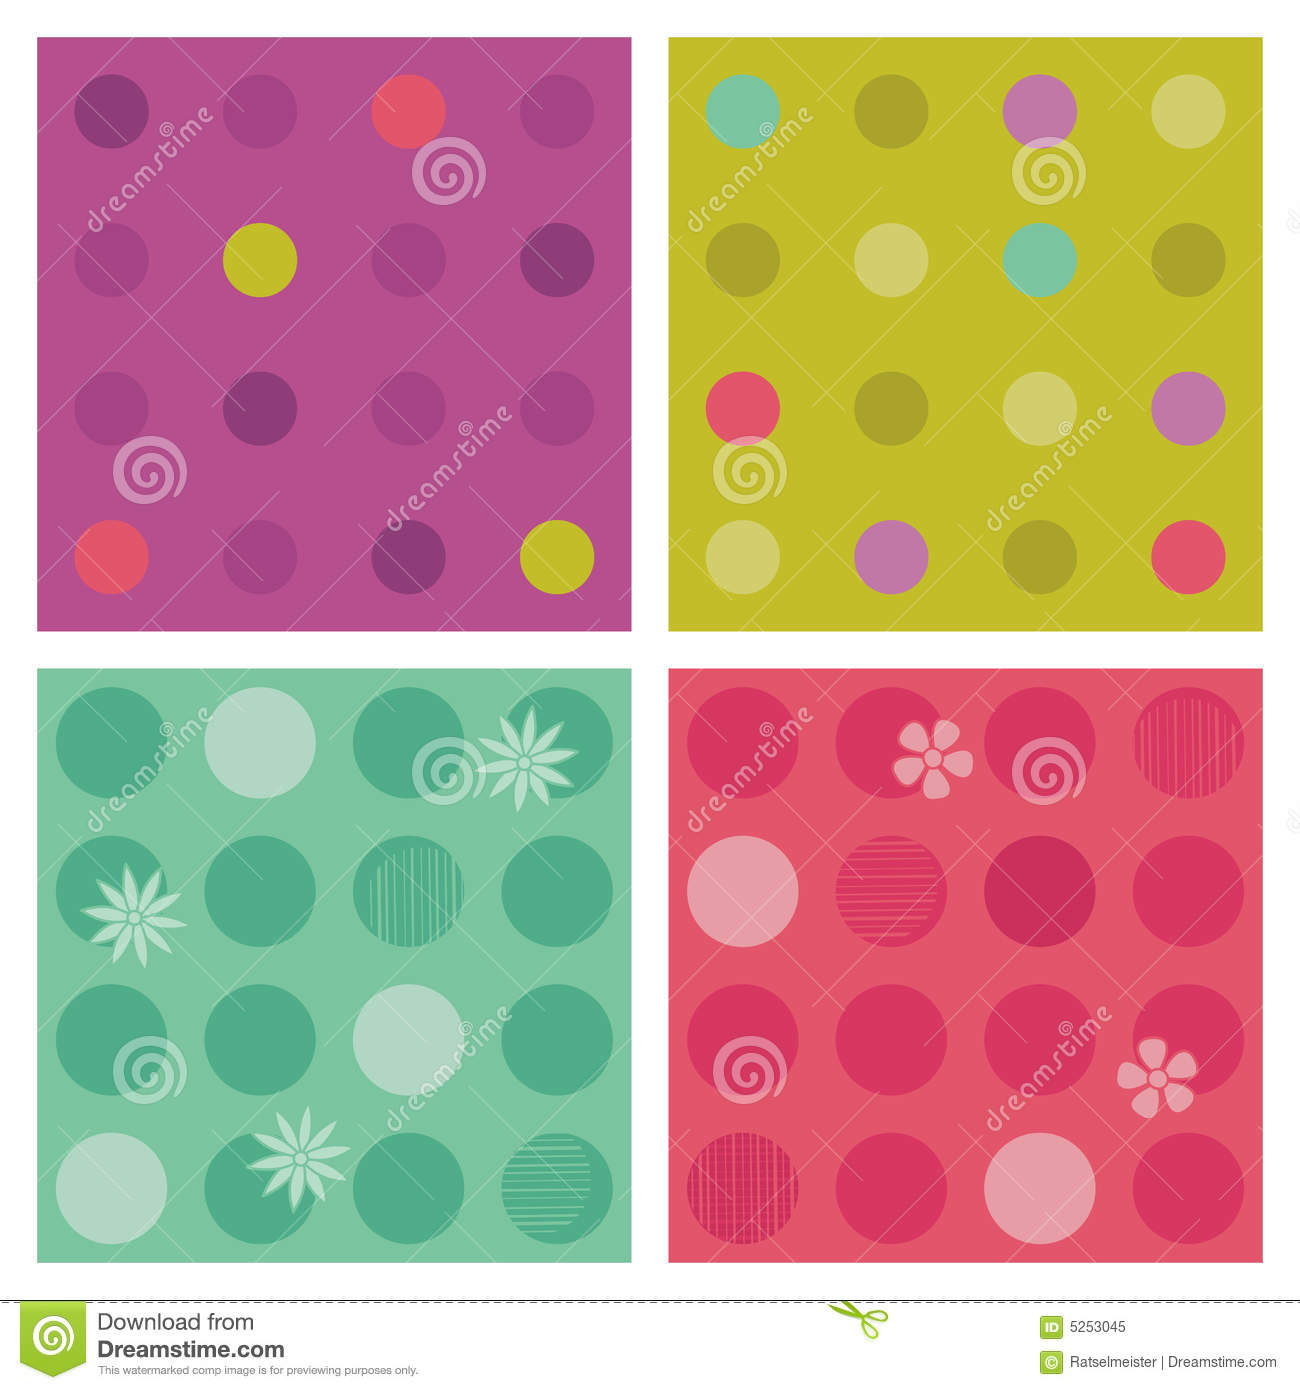 Polka-dot repeat patterns (seamless backgrounds)